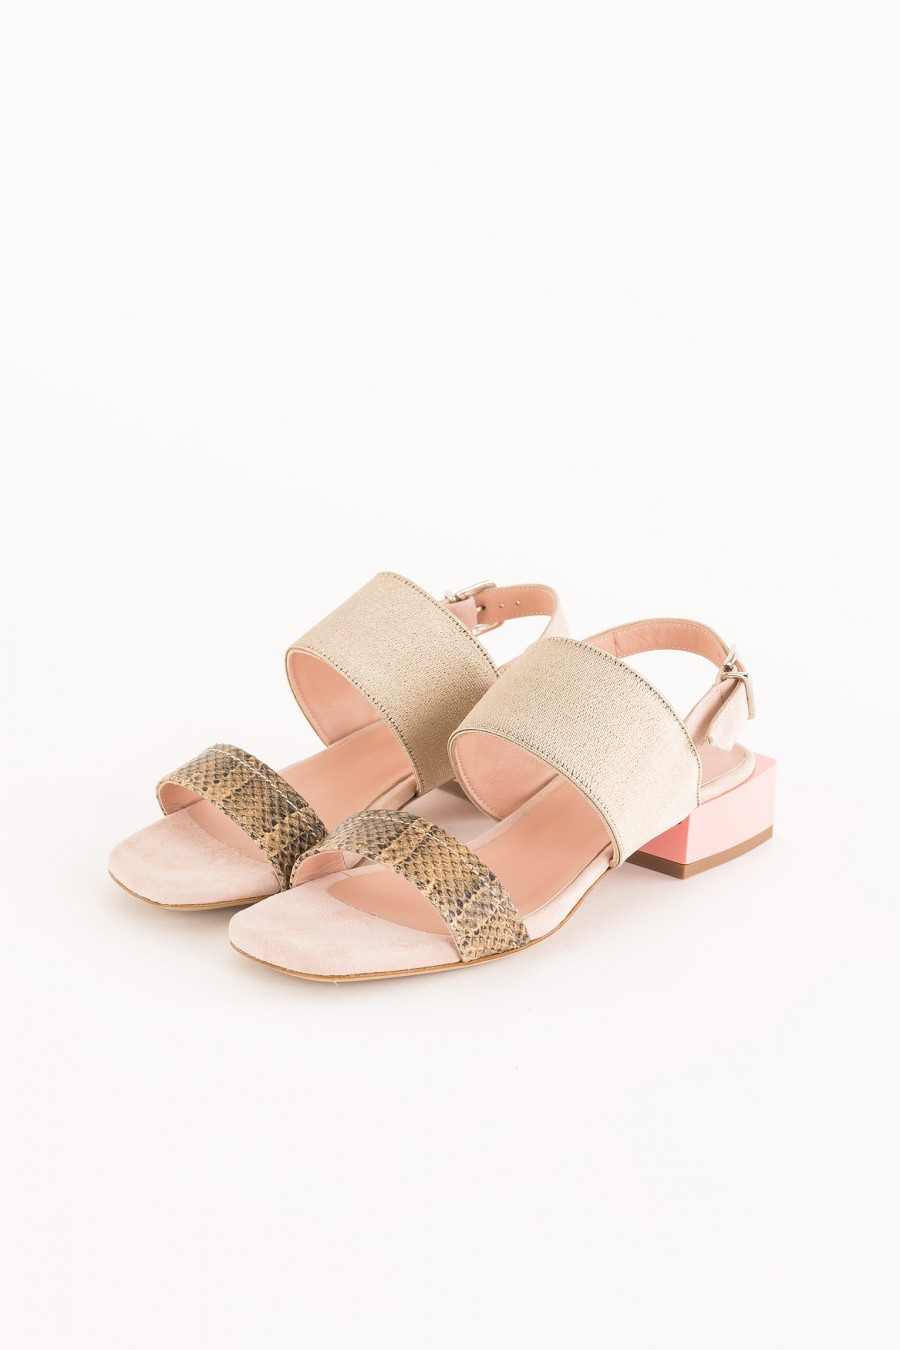 pink sandals with square heel